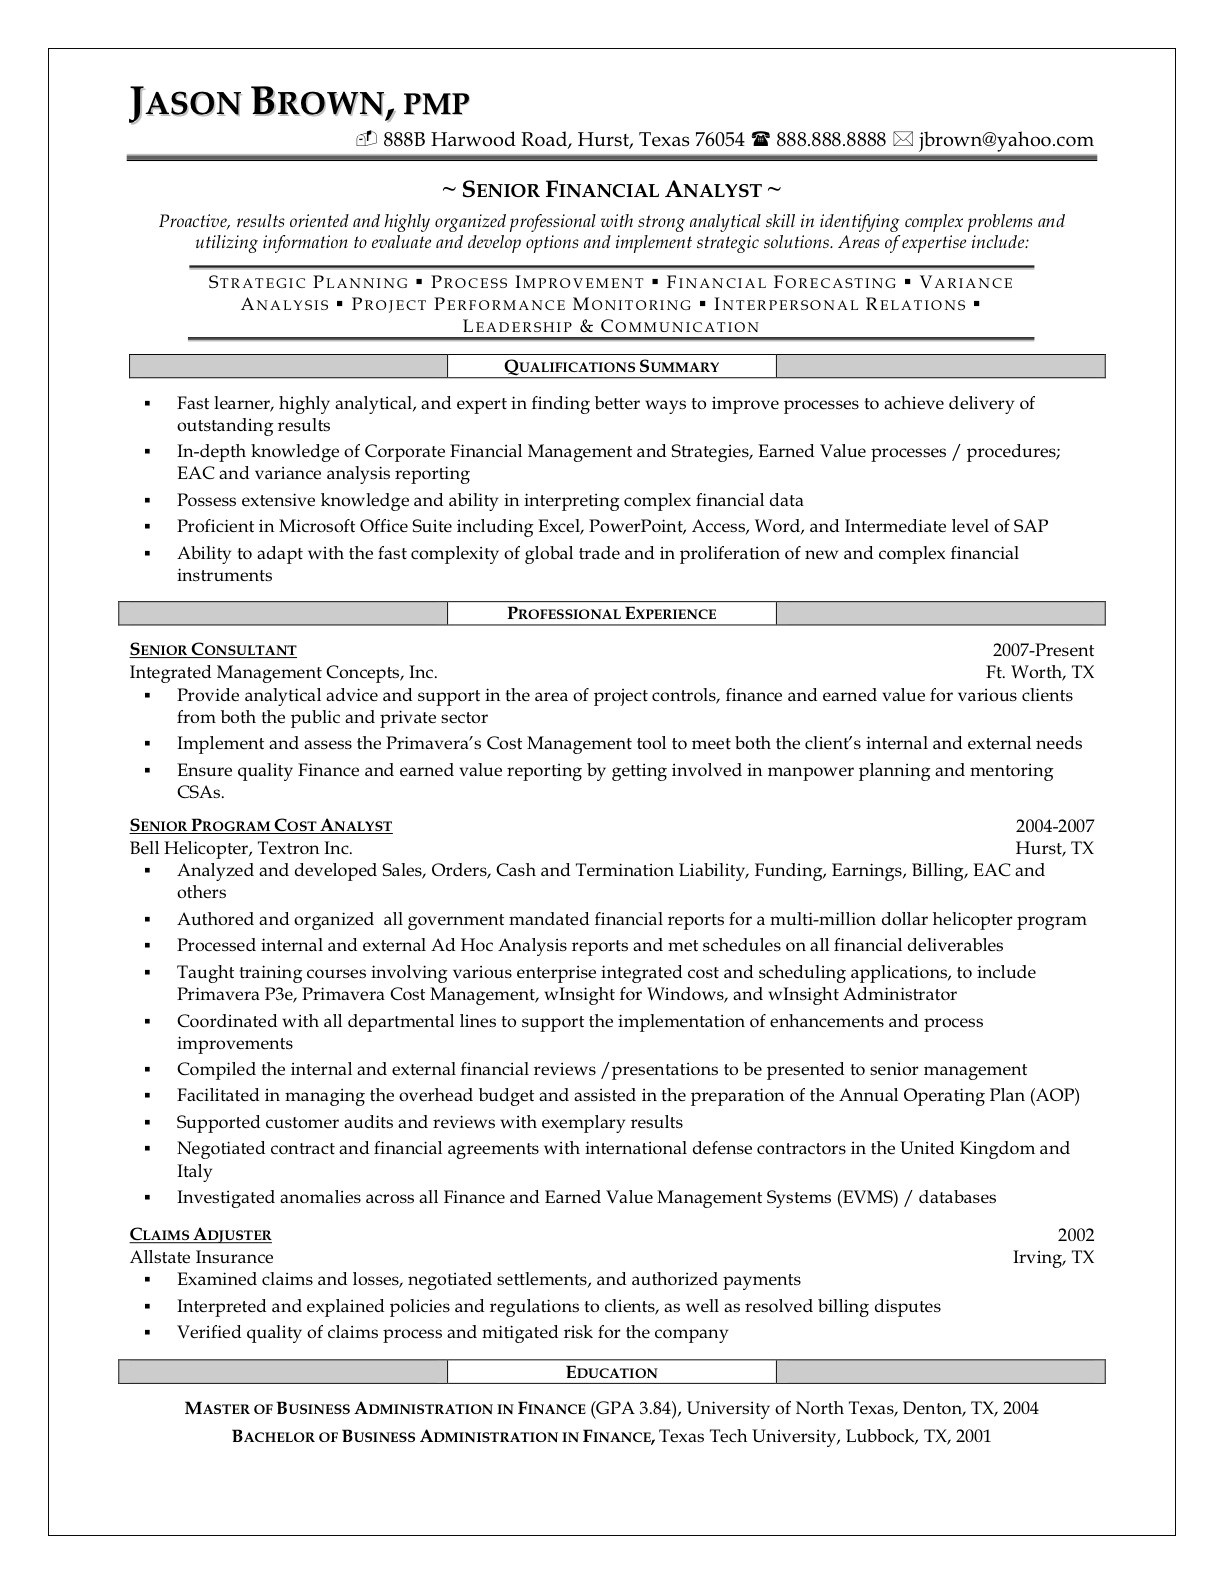 financial analyst resume example